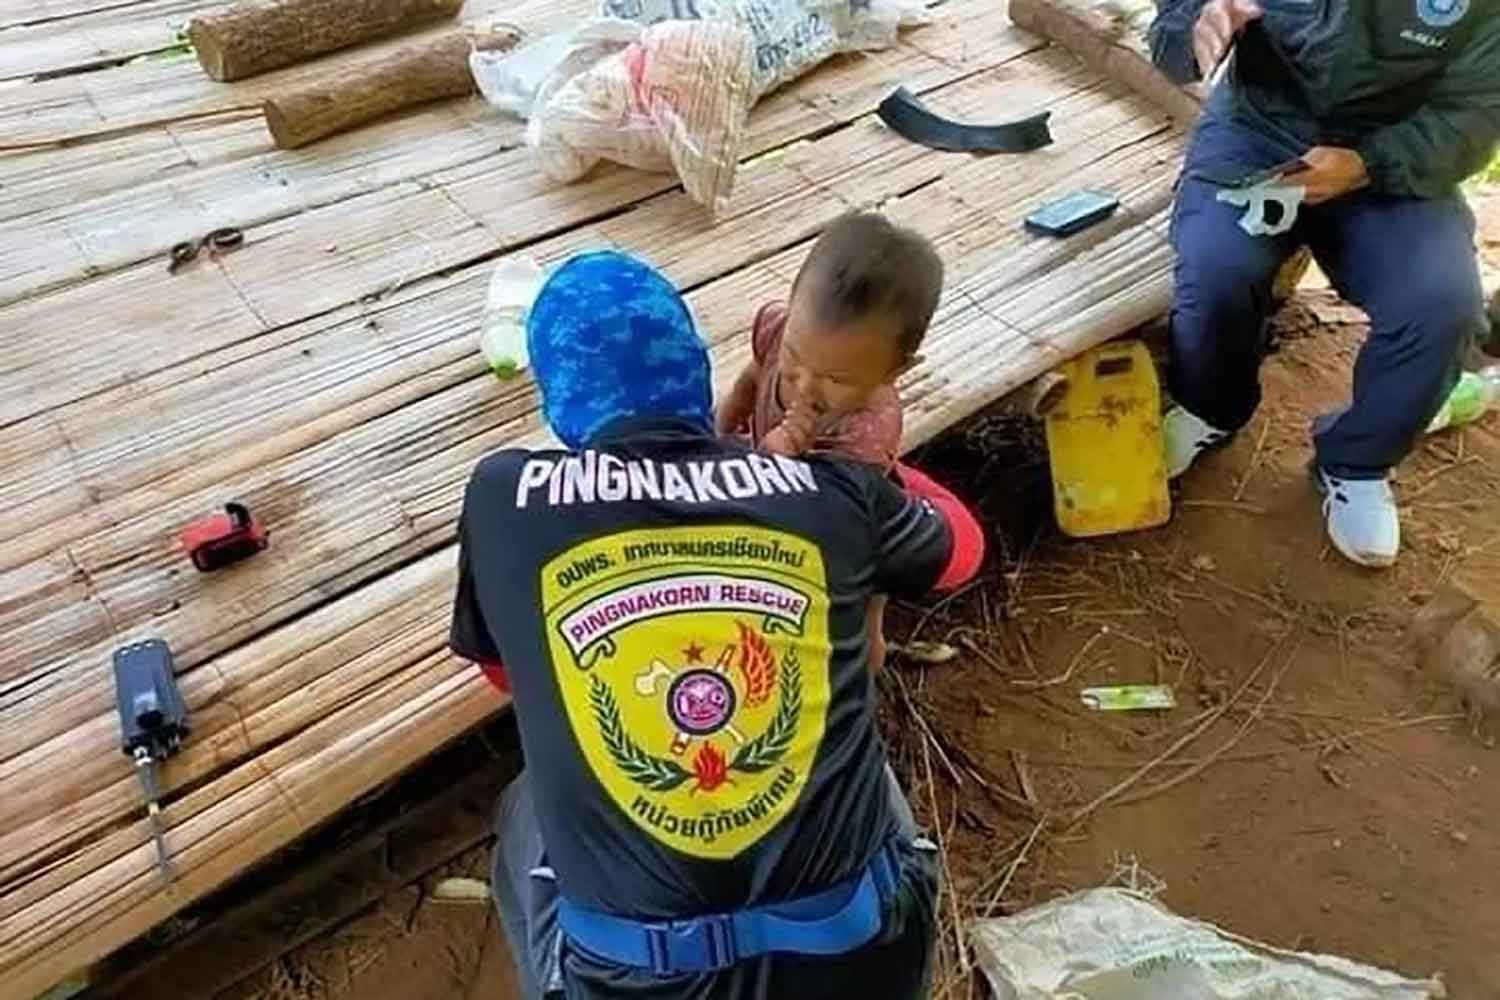 Rescue workers comfort Nong Gina at the hut where she was found, about two kilometres from her home in Mae Taeng district, Chiang Mai, around noon on Wednesday. (Photo: Panumet Tanraksa)